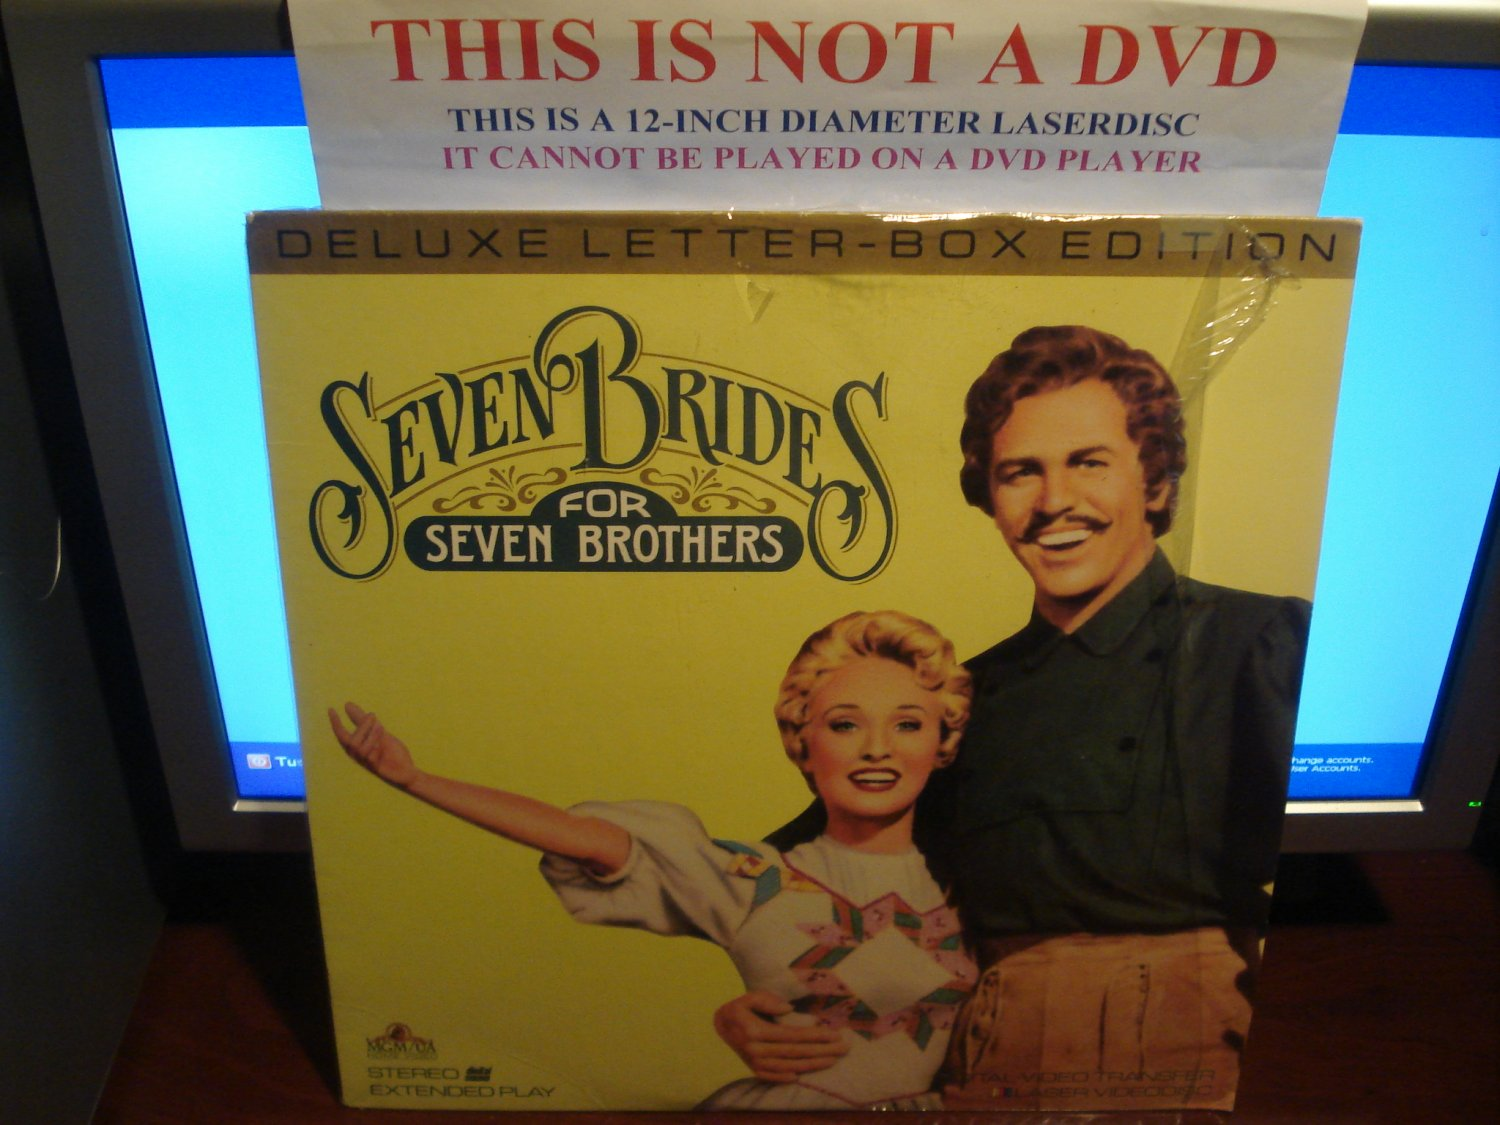 Laserdisc SEVEN BRIDES FOR SEVEN BROTHERS (1954) Jane Powell Lot#1 DLX LTBX LD